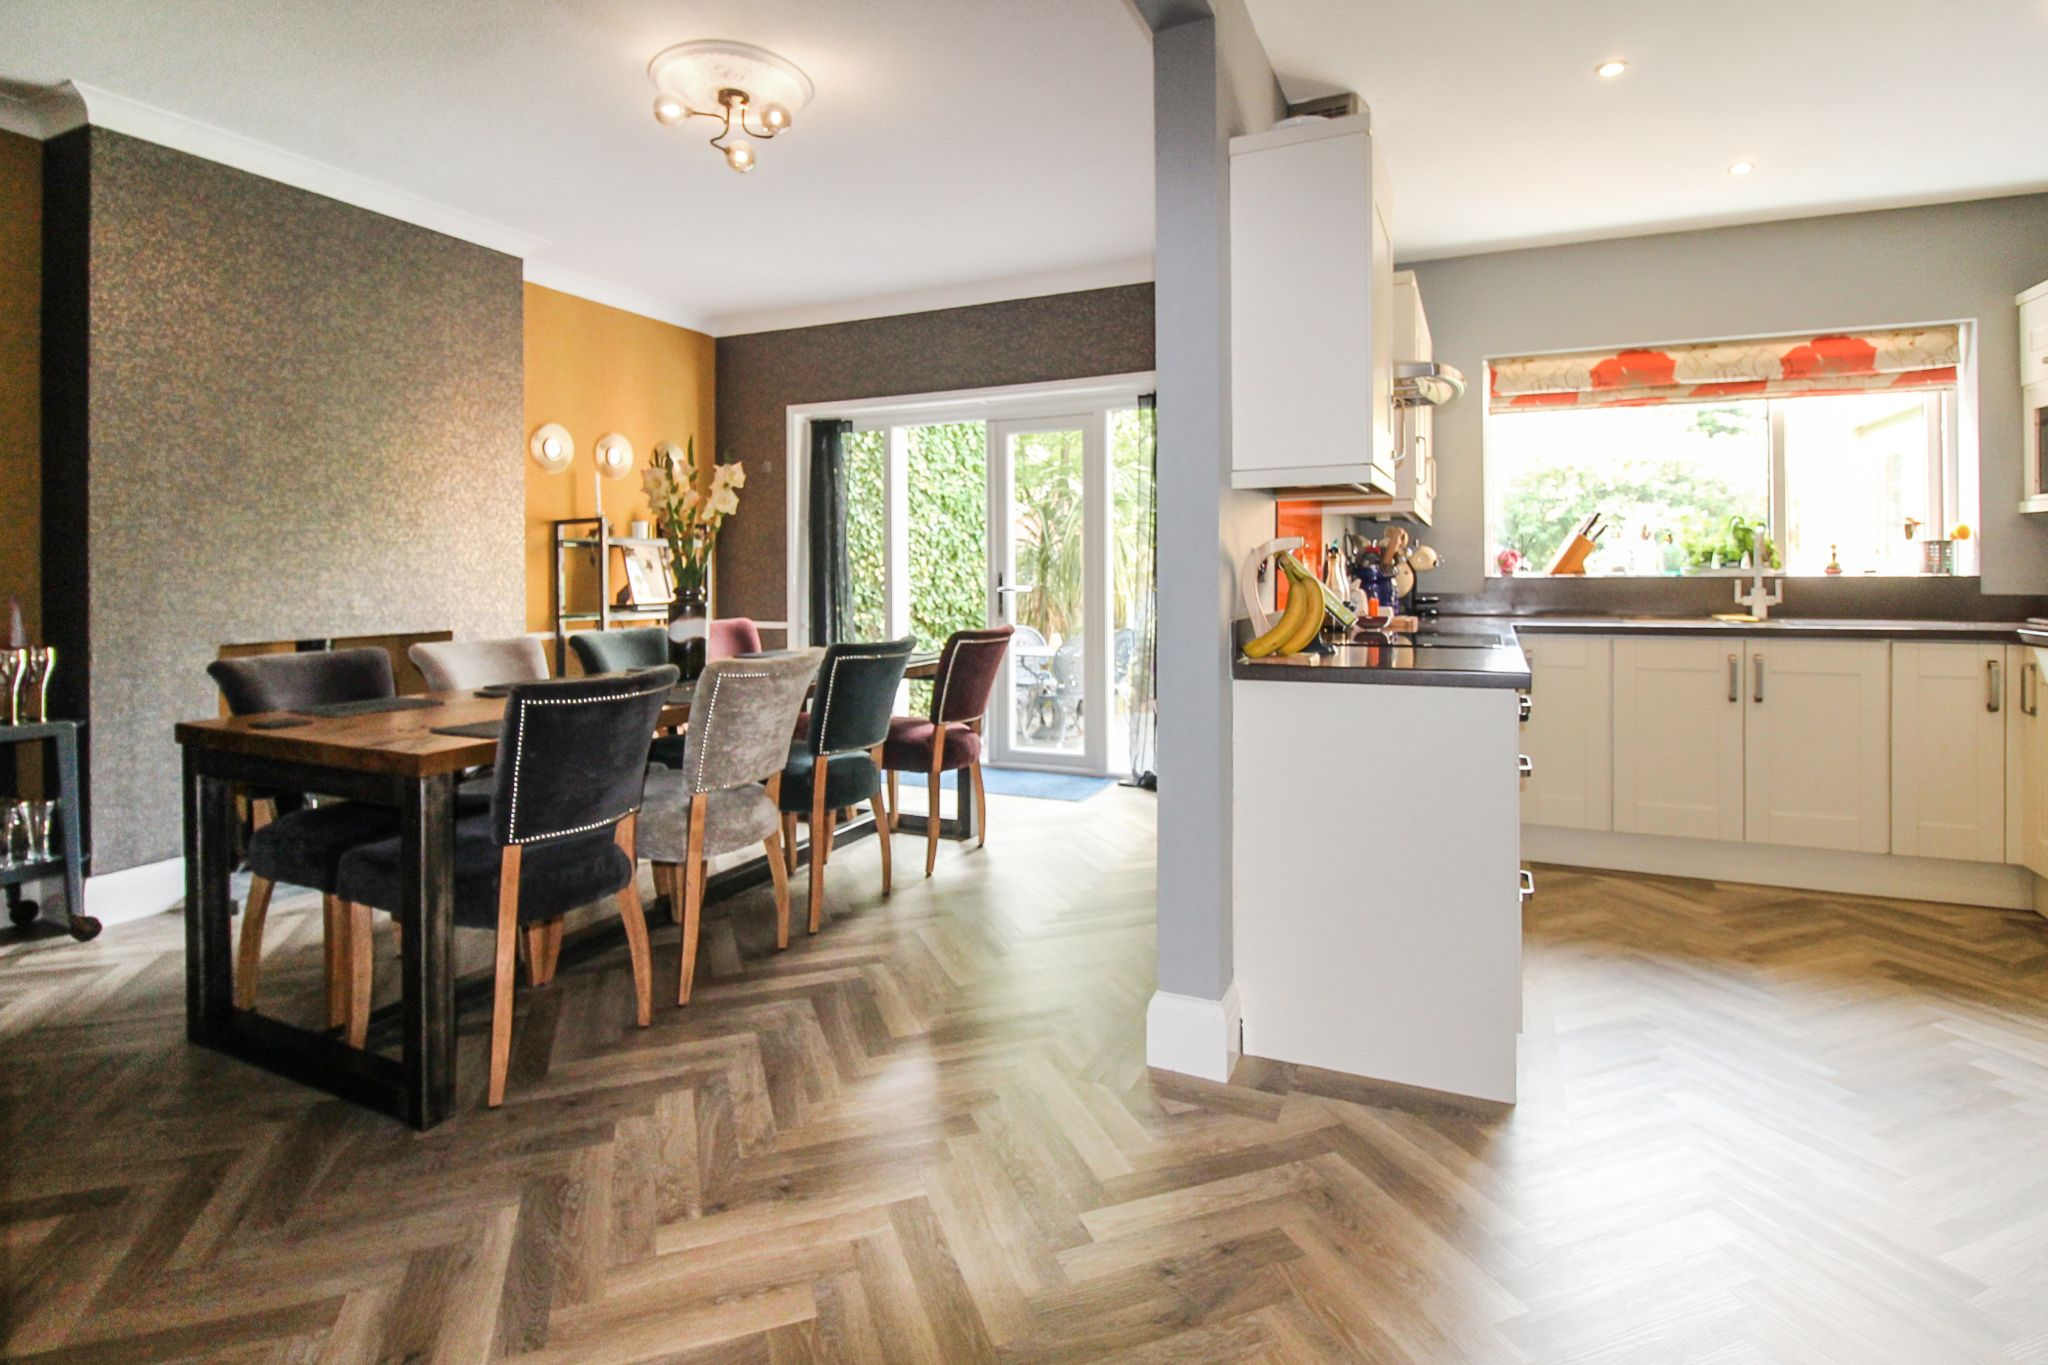 4 bedroom detached house For Sale in Solihull - Photograph 4.